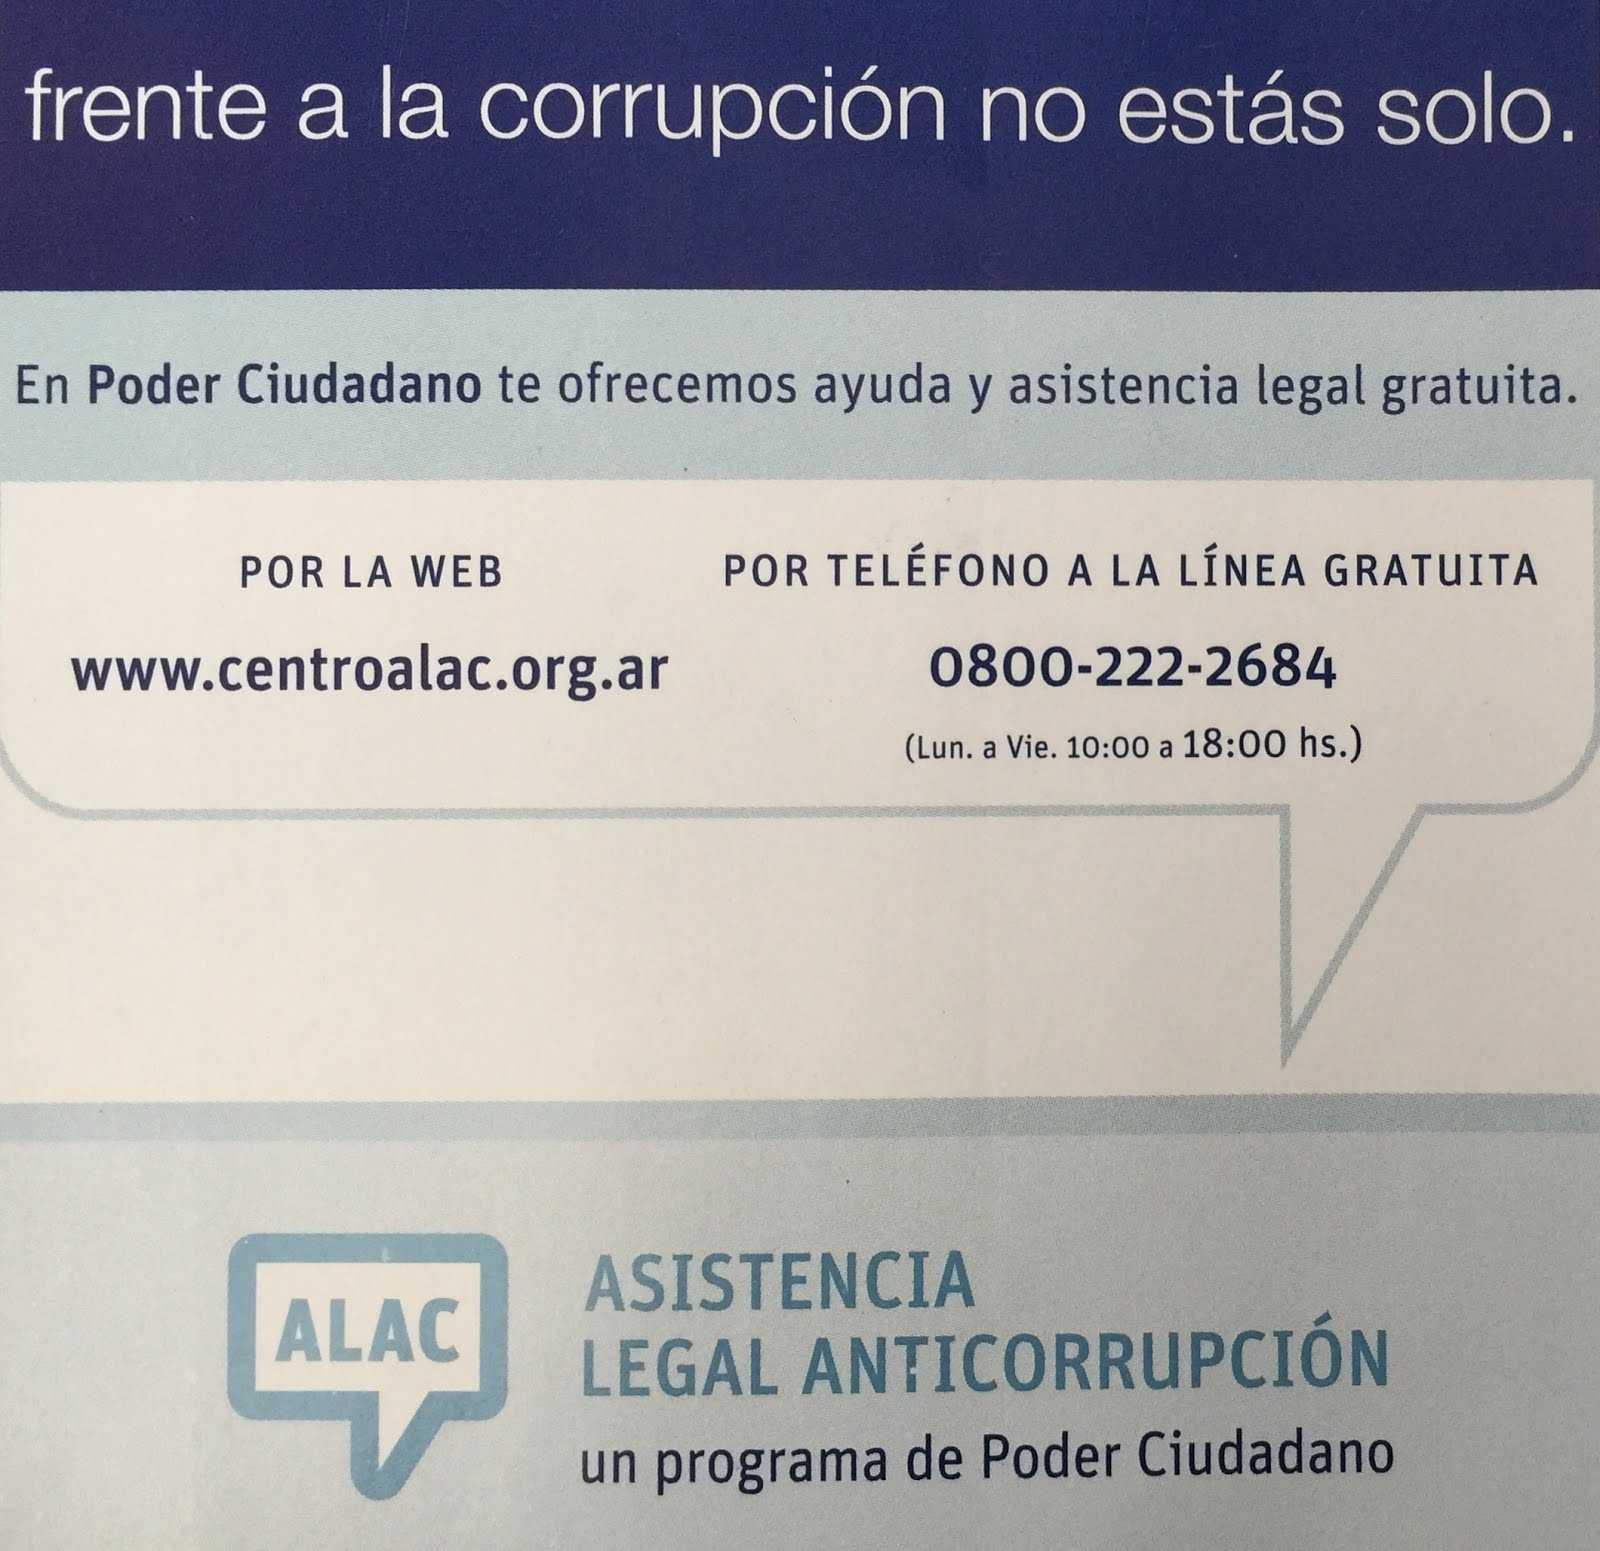 Asistencia Legal Anticorrupción